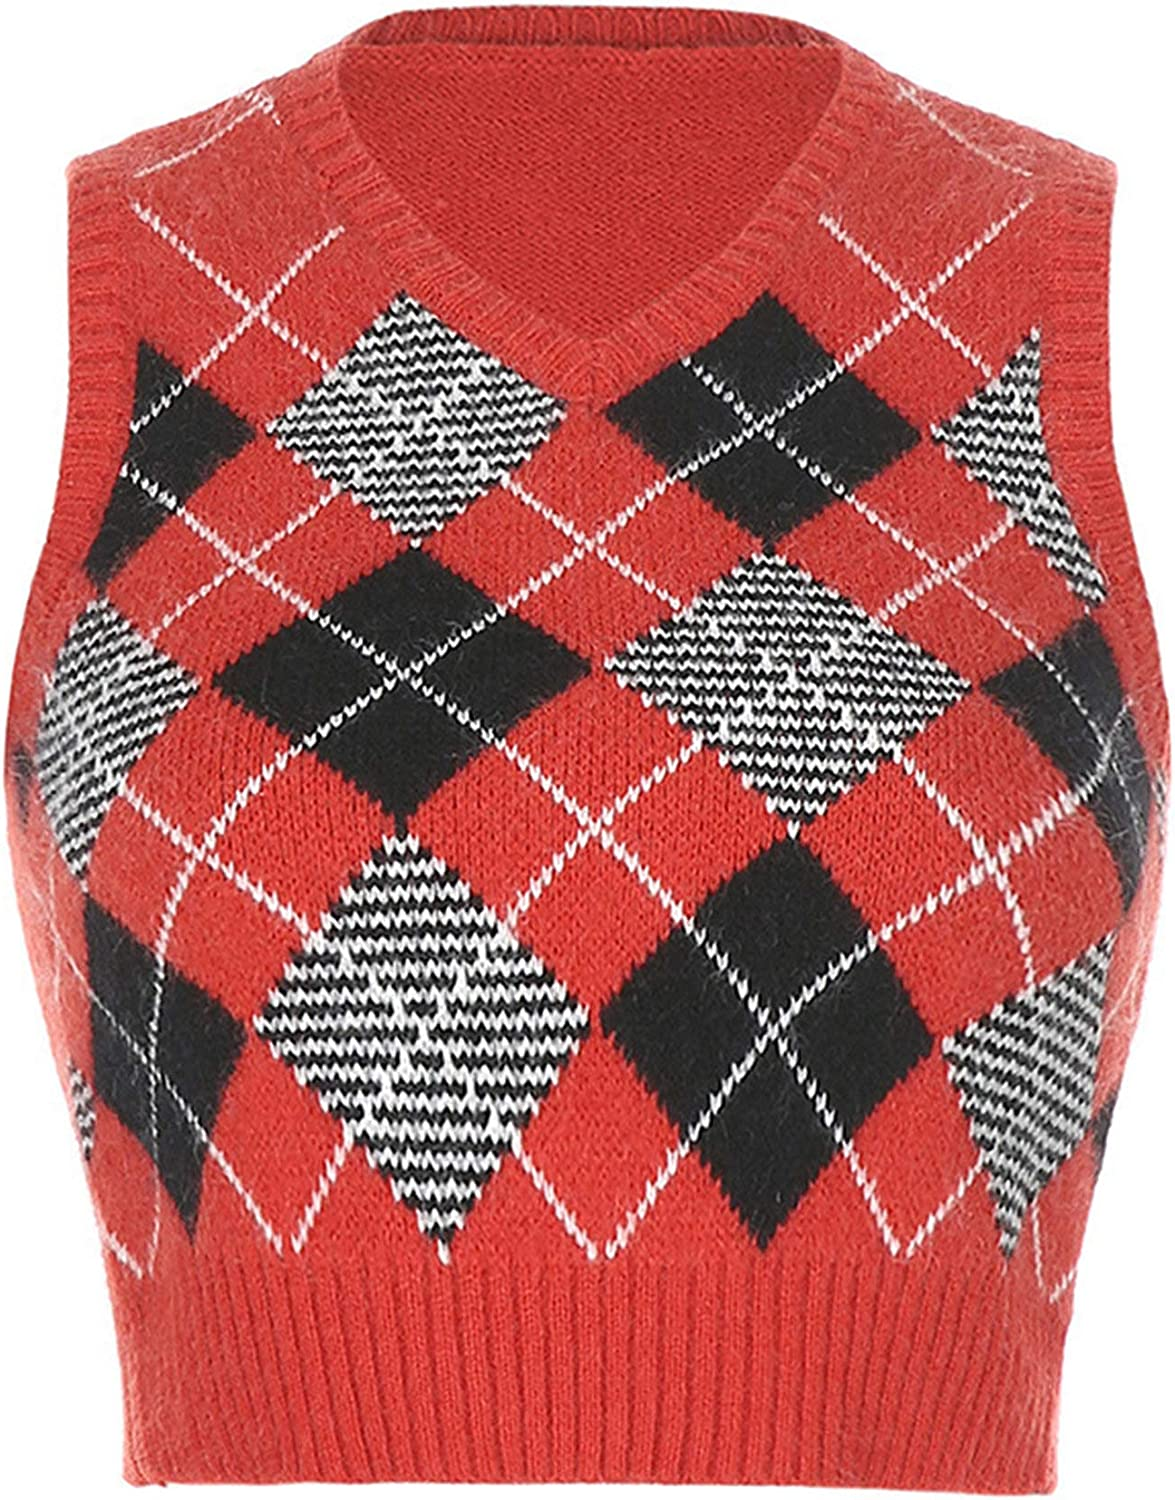 Women Plaid Knitted Sweater Vest Preppy Style Knitwear Tank Top V-Neck Sleeveless Casual Pullover Tank Tops (Red 1,Small)